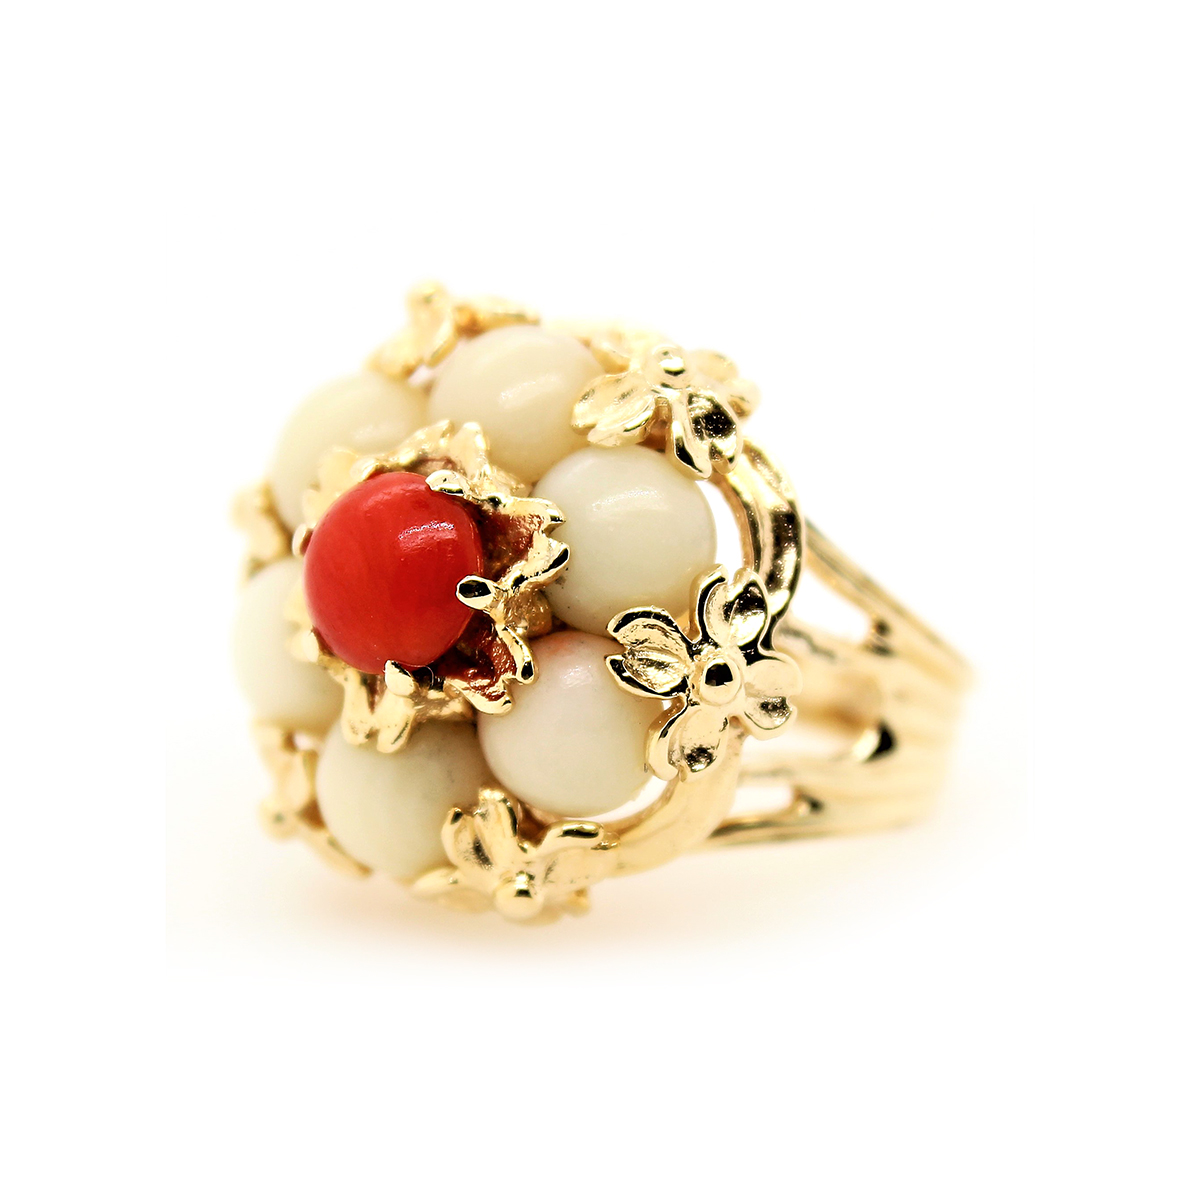 Vintage 14 Karat Yellow Gold Oxblood and Coral Flower Ring